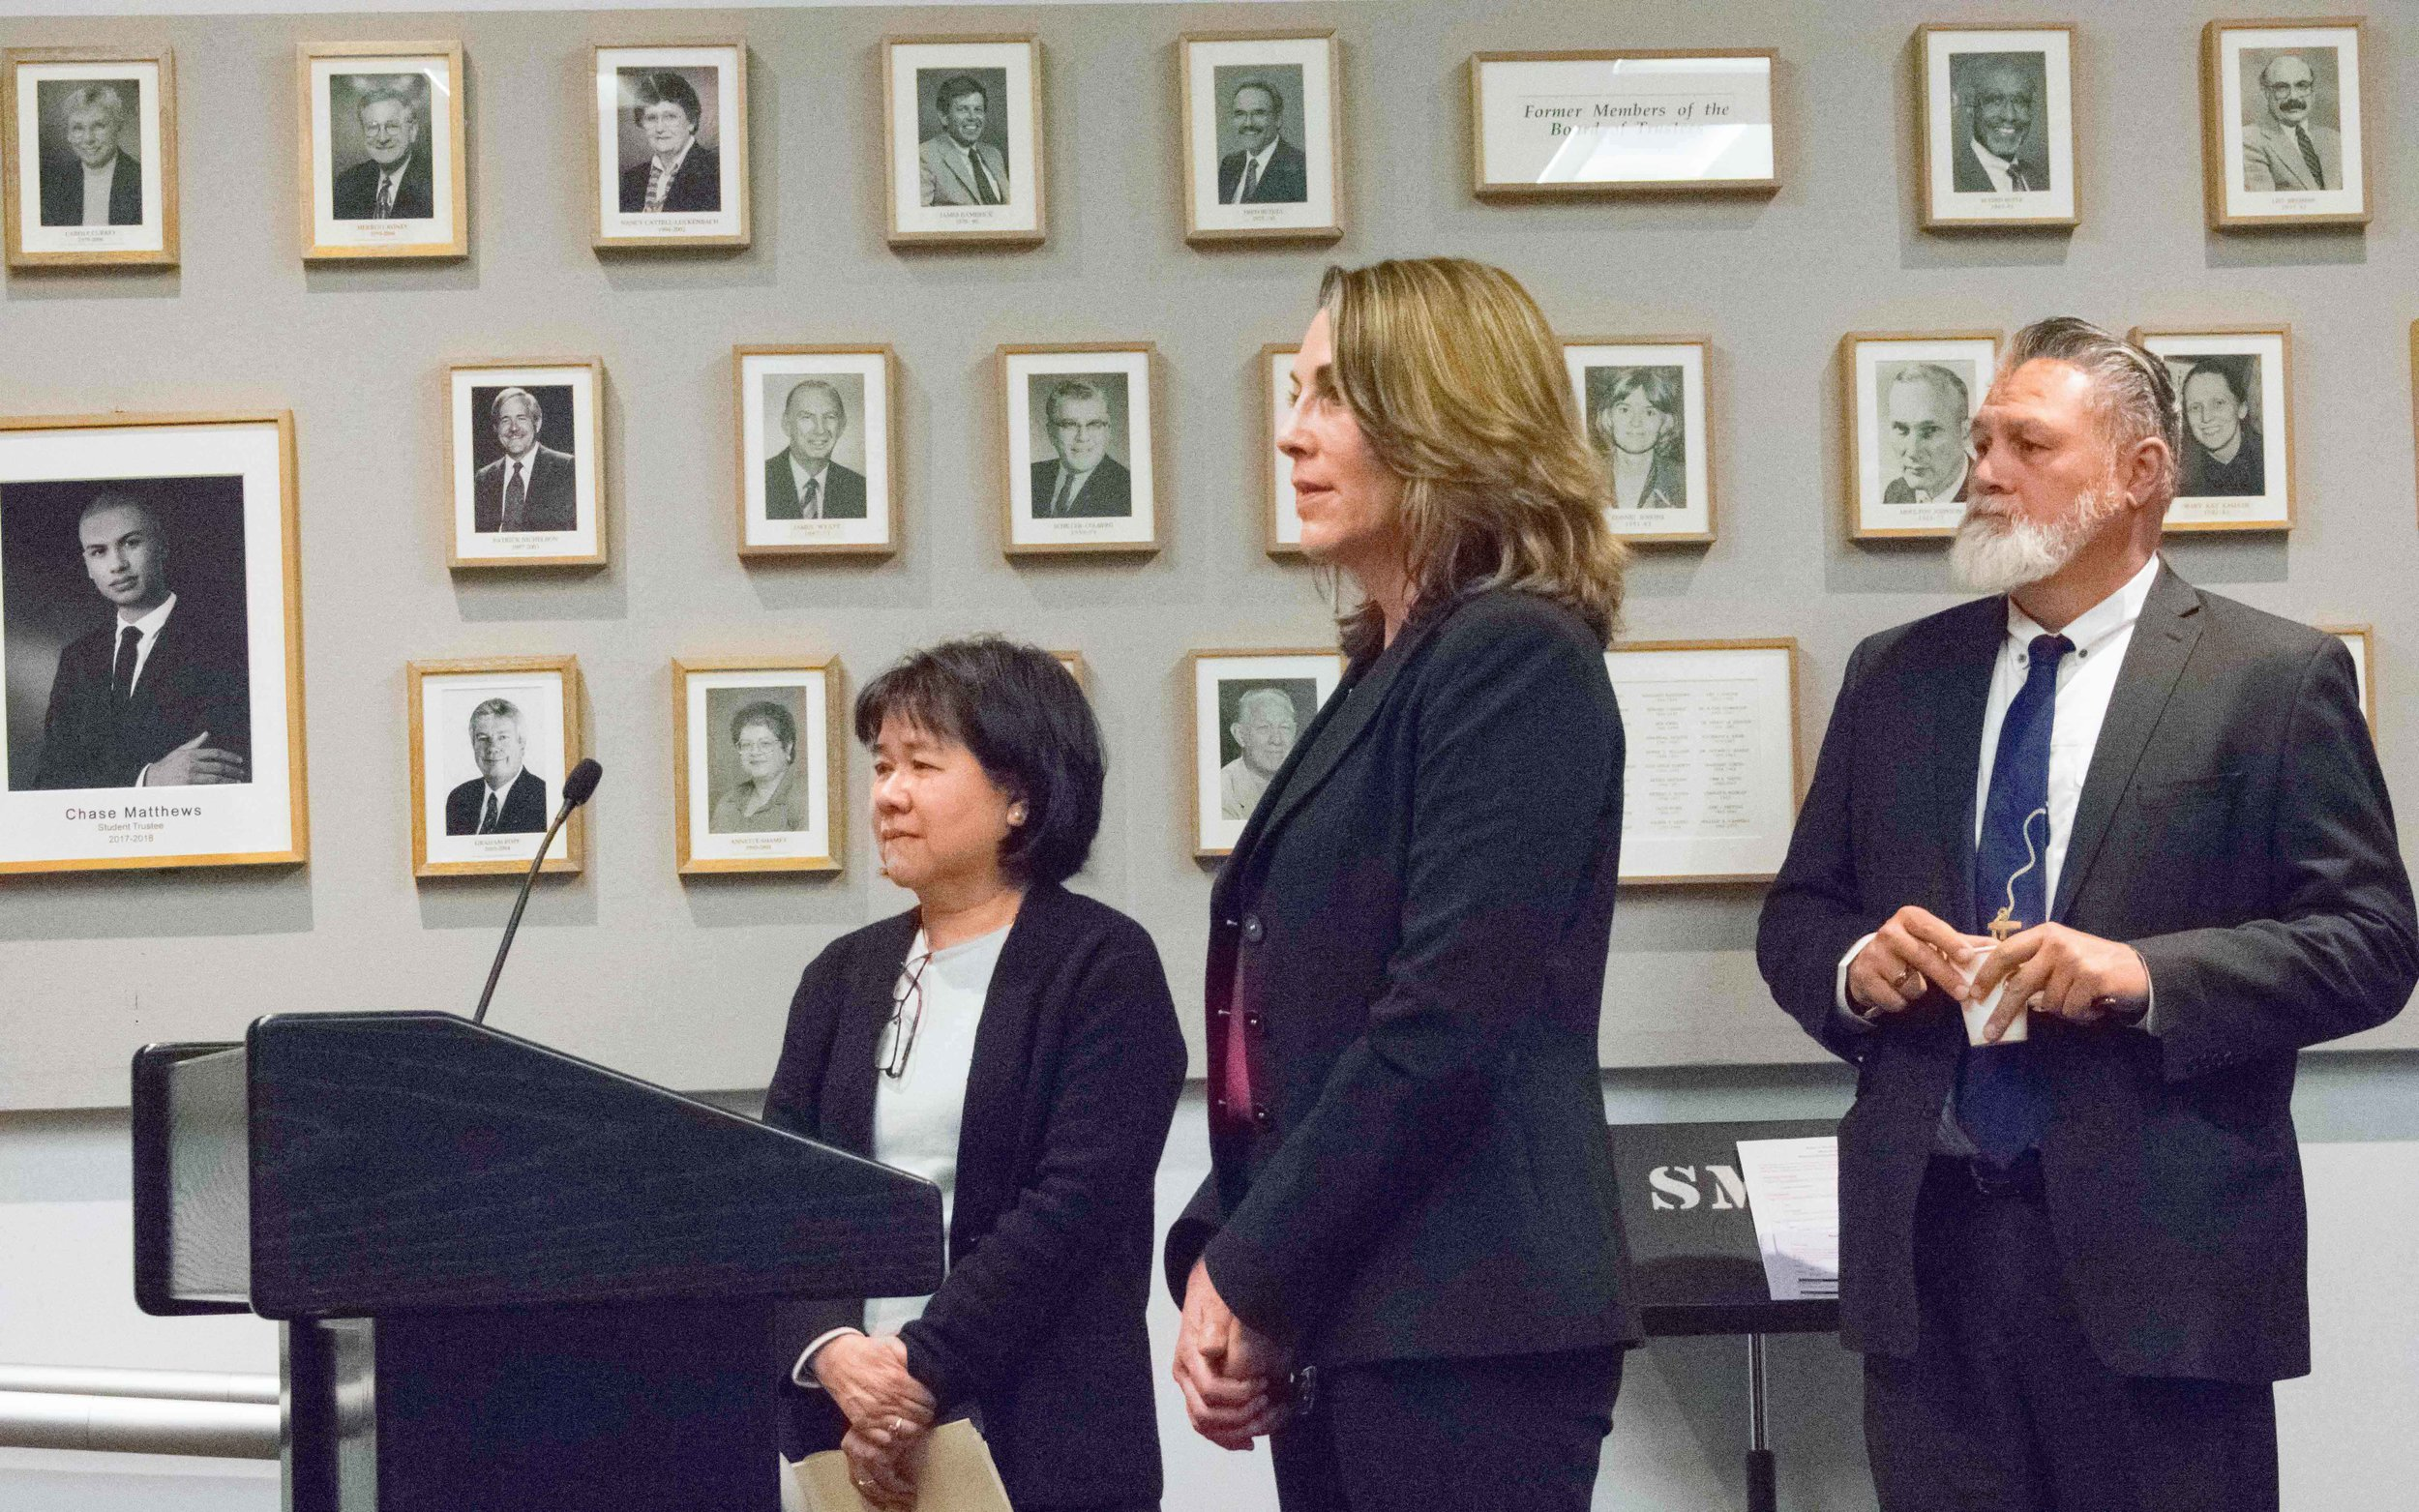 During the monthly Board of Trustees meeting, representatives of the Disabled Students Program and Services, pictured left to right are Faculty Coordinator Nathalie Laille(cx), Director Stephanie Schlatter, and Mike Tuitasi, Vice President of Student Affairs discuss how the center has been doing in recent months at Santa Monica College in Santa Monica, California on Tuesday, March 6, 2018. (Photo by Ethan Lauren/Corsair Staff)